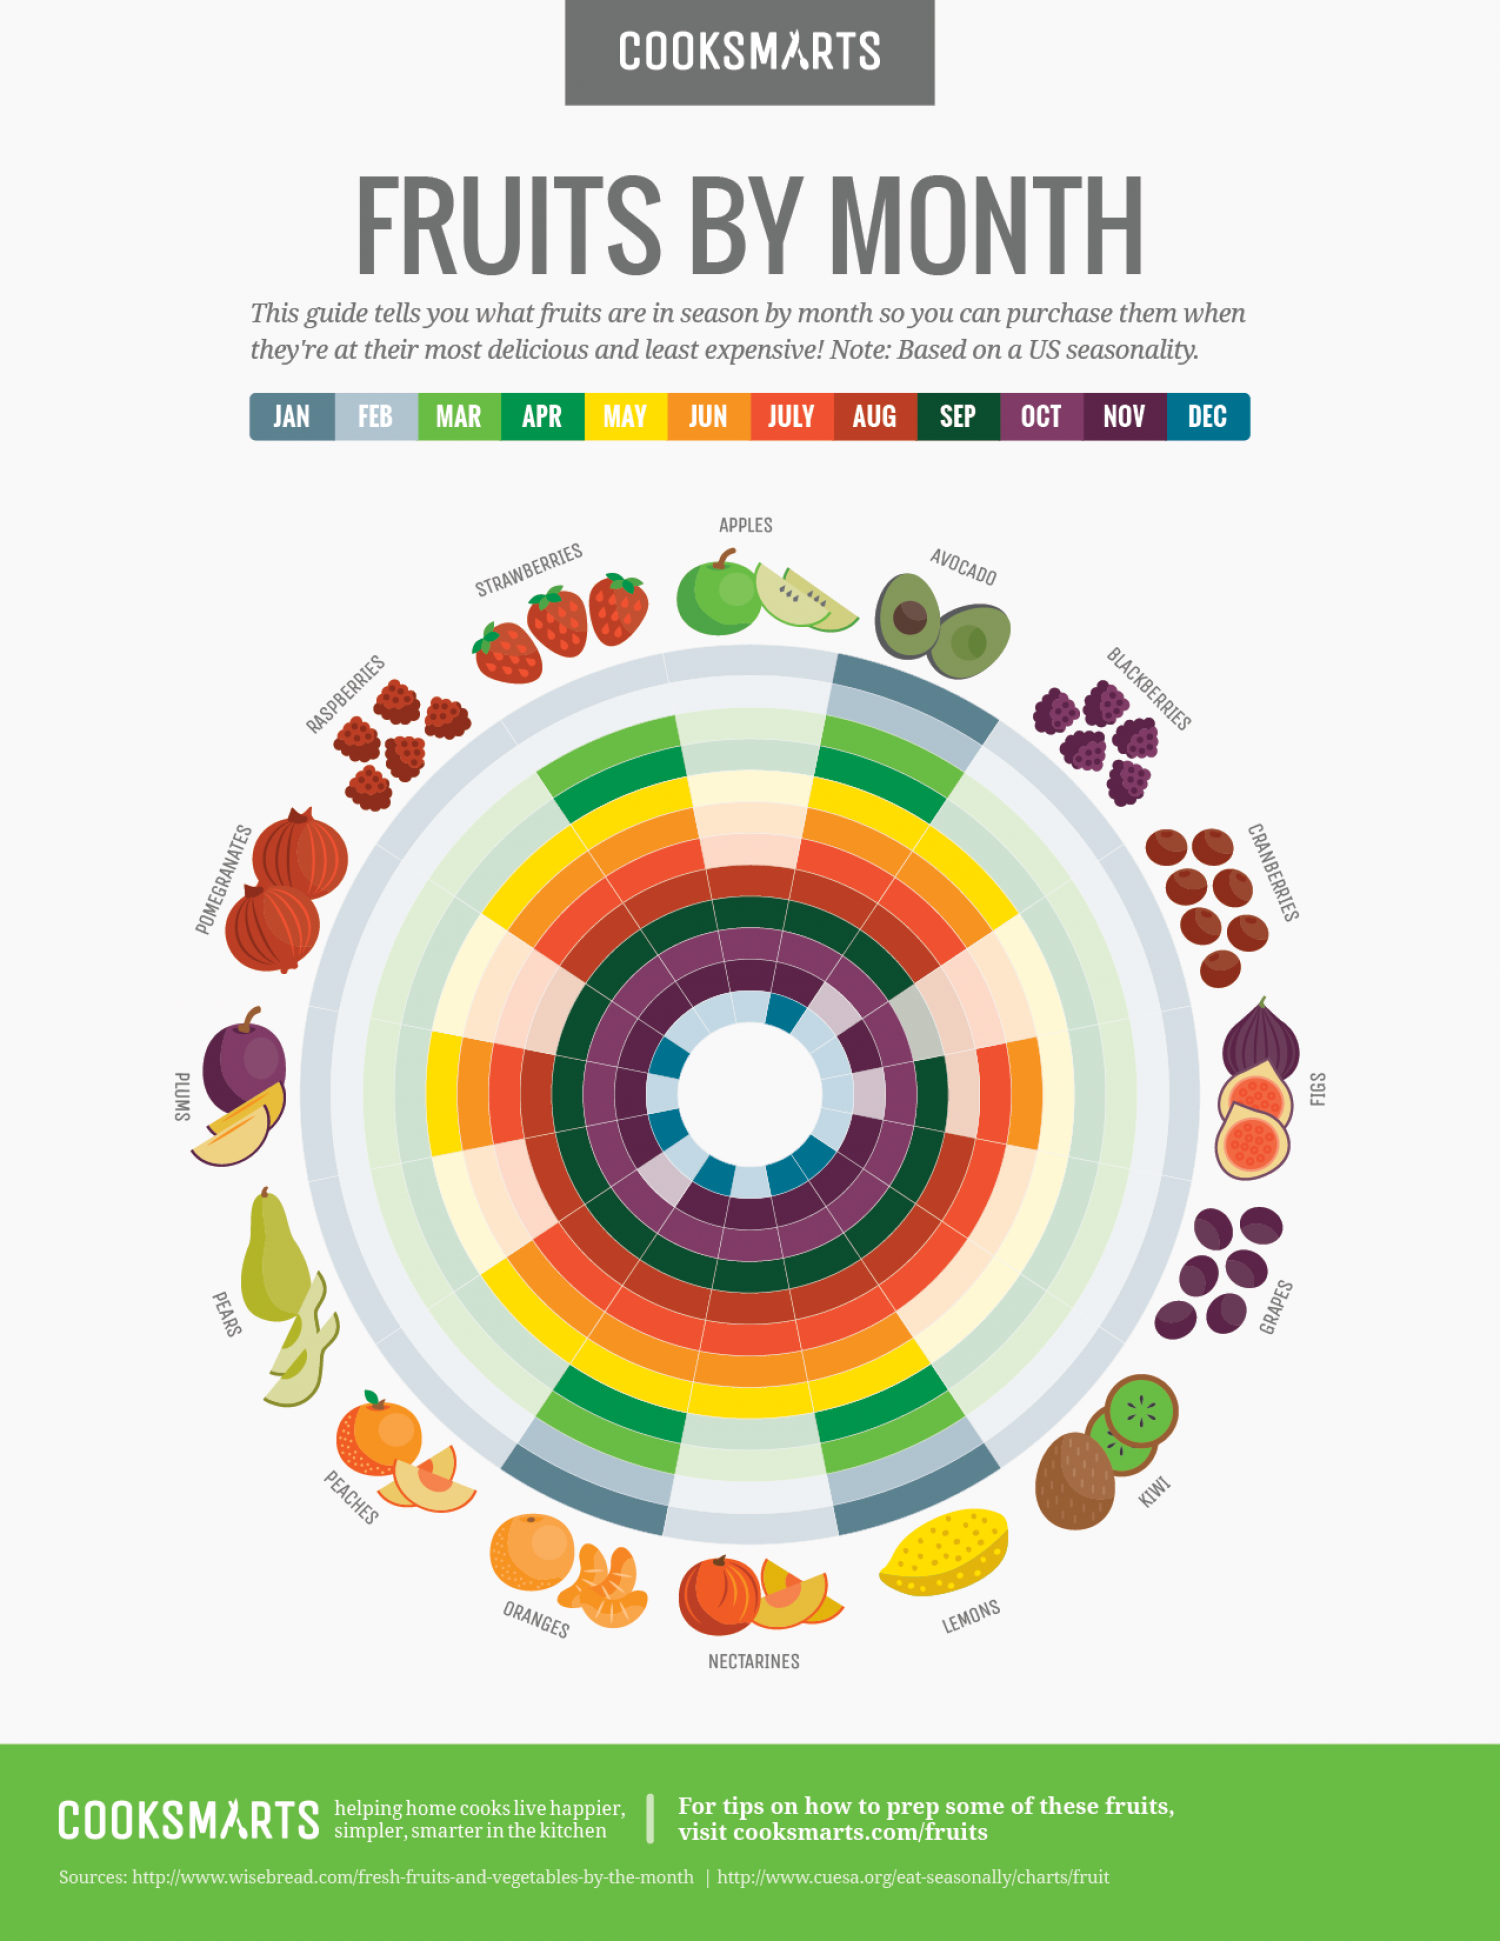 Fruits by Month Guide